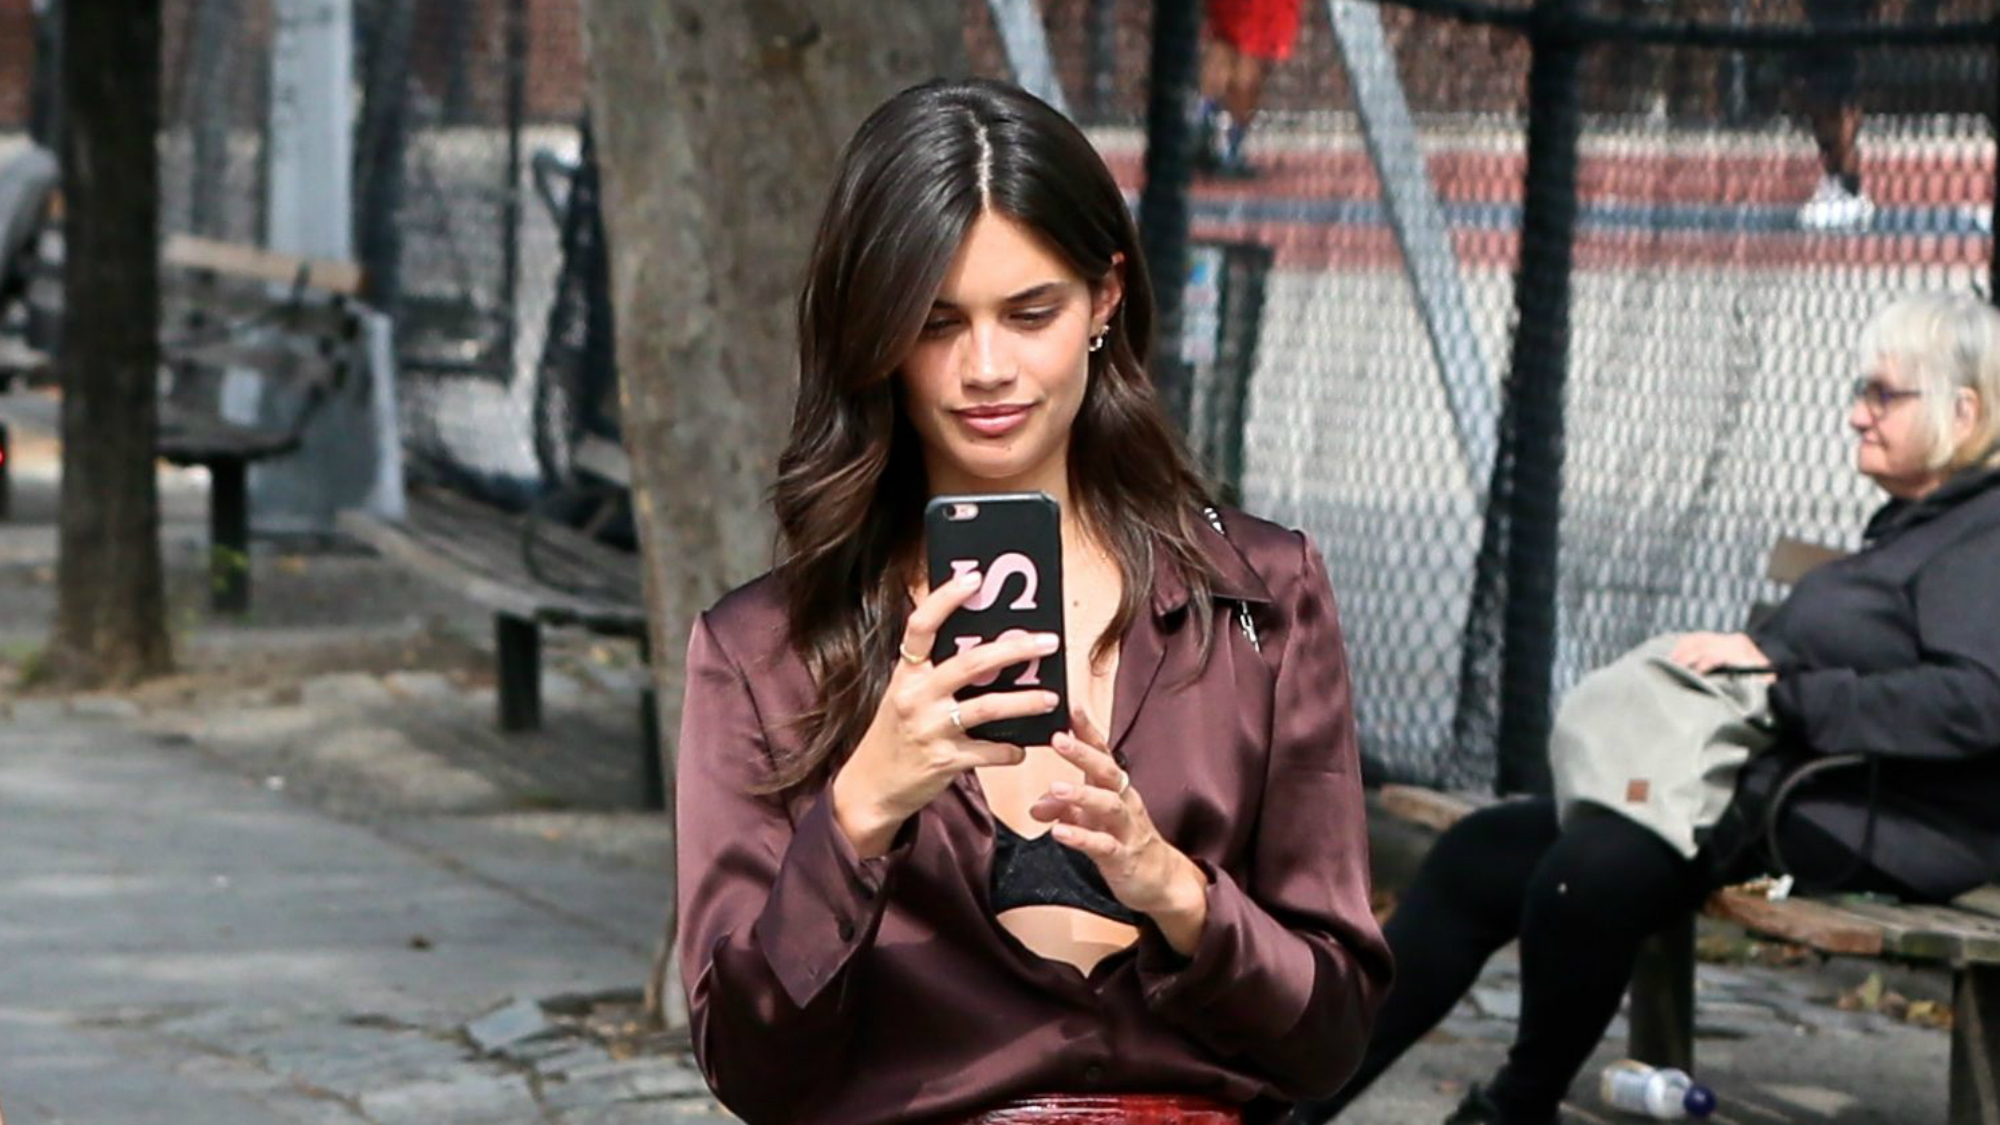 This is how Instagram's potential update could ruin your entire profile